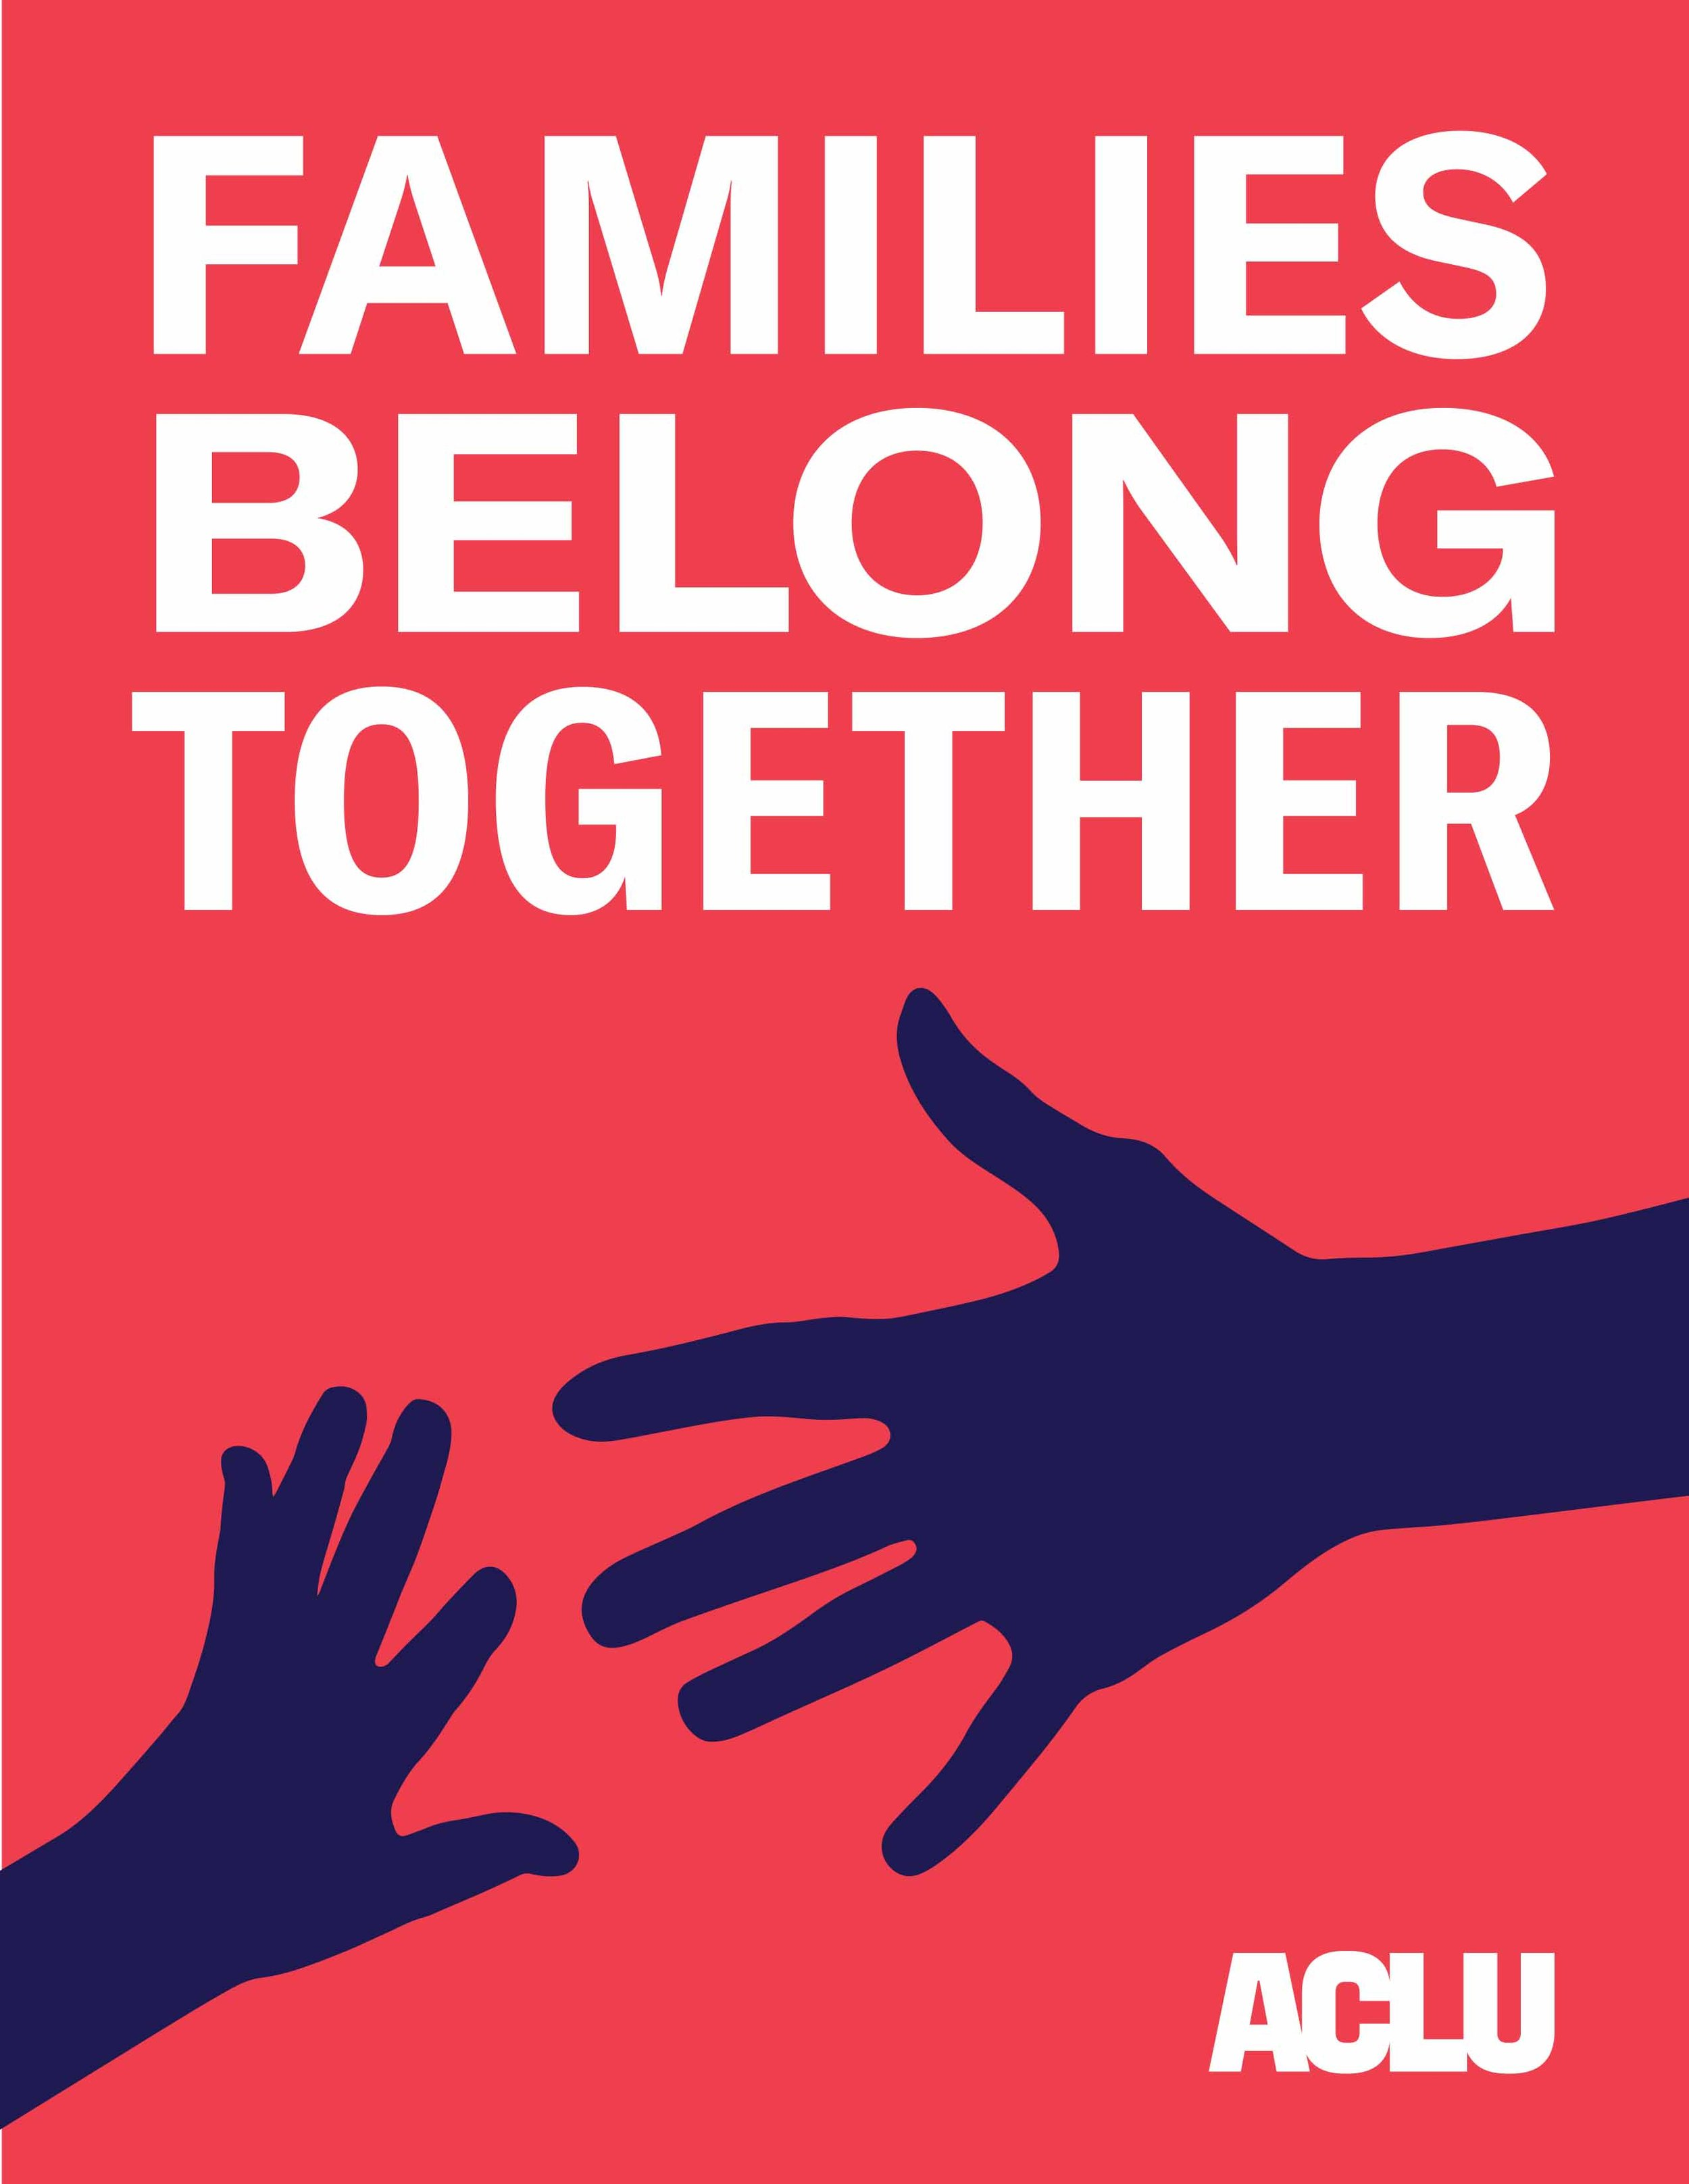 ACLU Families Belong Together, benefit, free yoga, victoria heron, corte madera